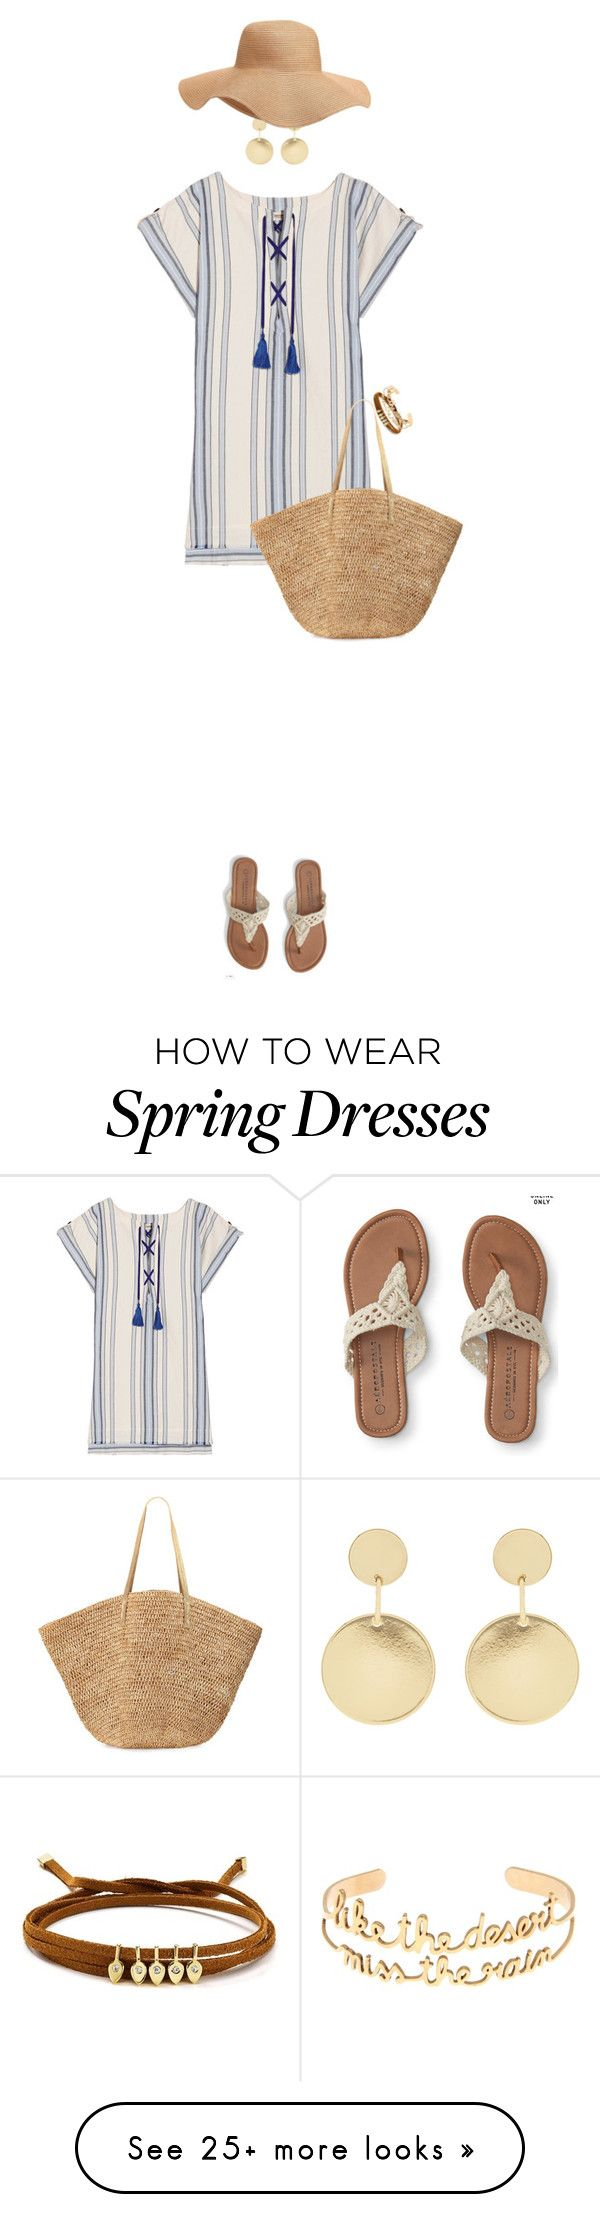 """Flip Flops For Spring/Summer"" by ittie-kittie on Polyvore featuring Lemlem, Aéropostale, Accessorize, Flora Bella, Old Navy, Jules Smith and VANINA"